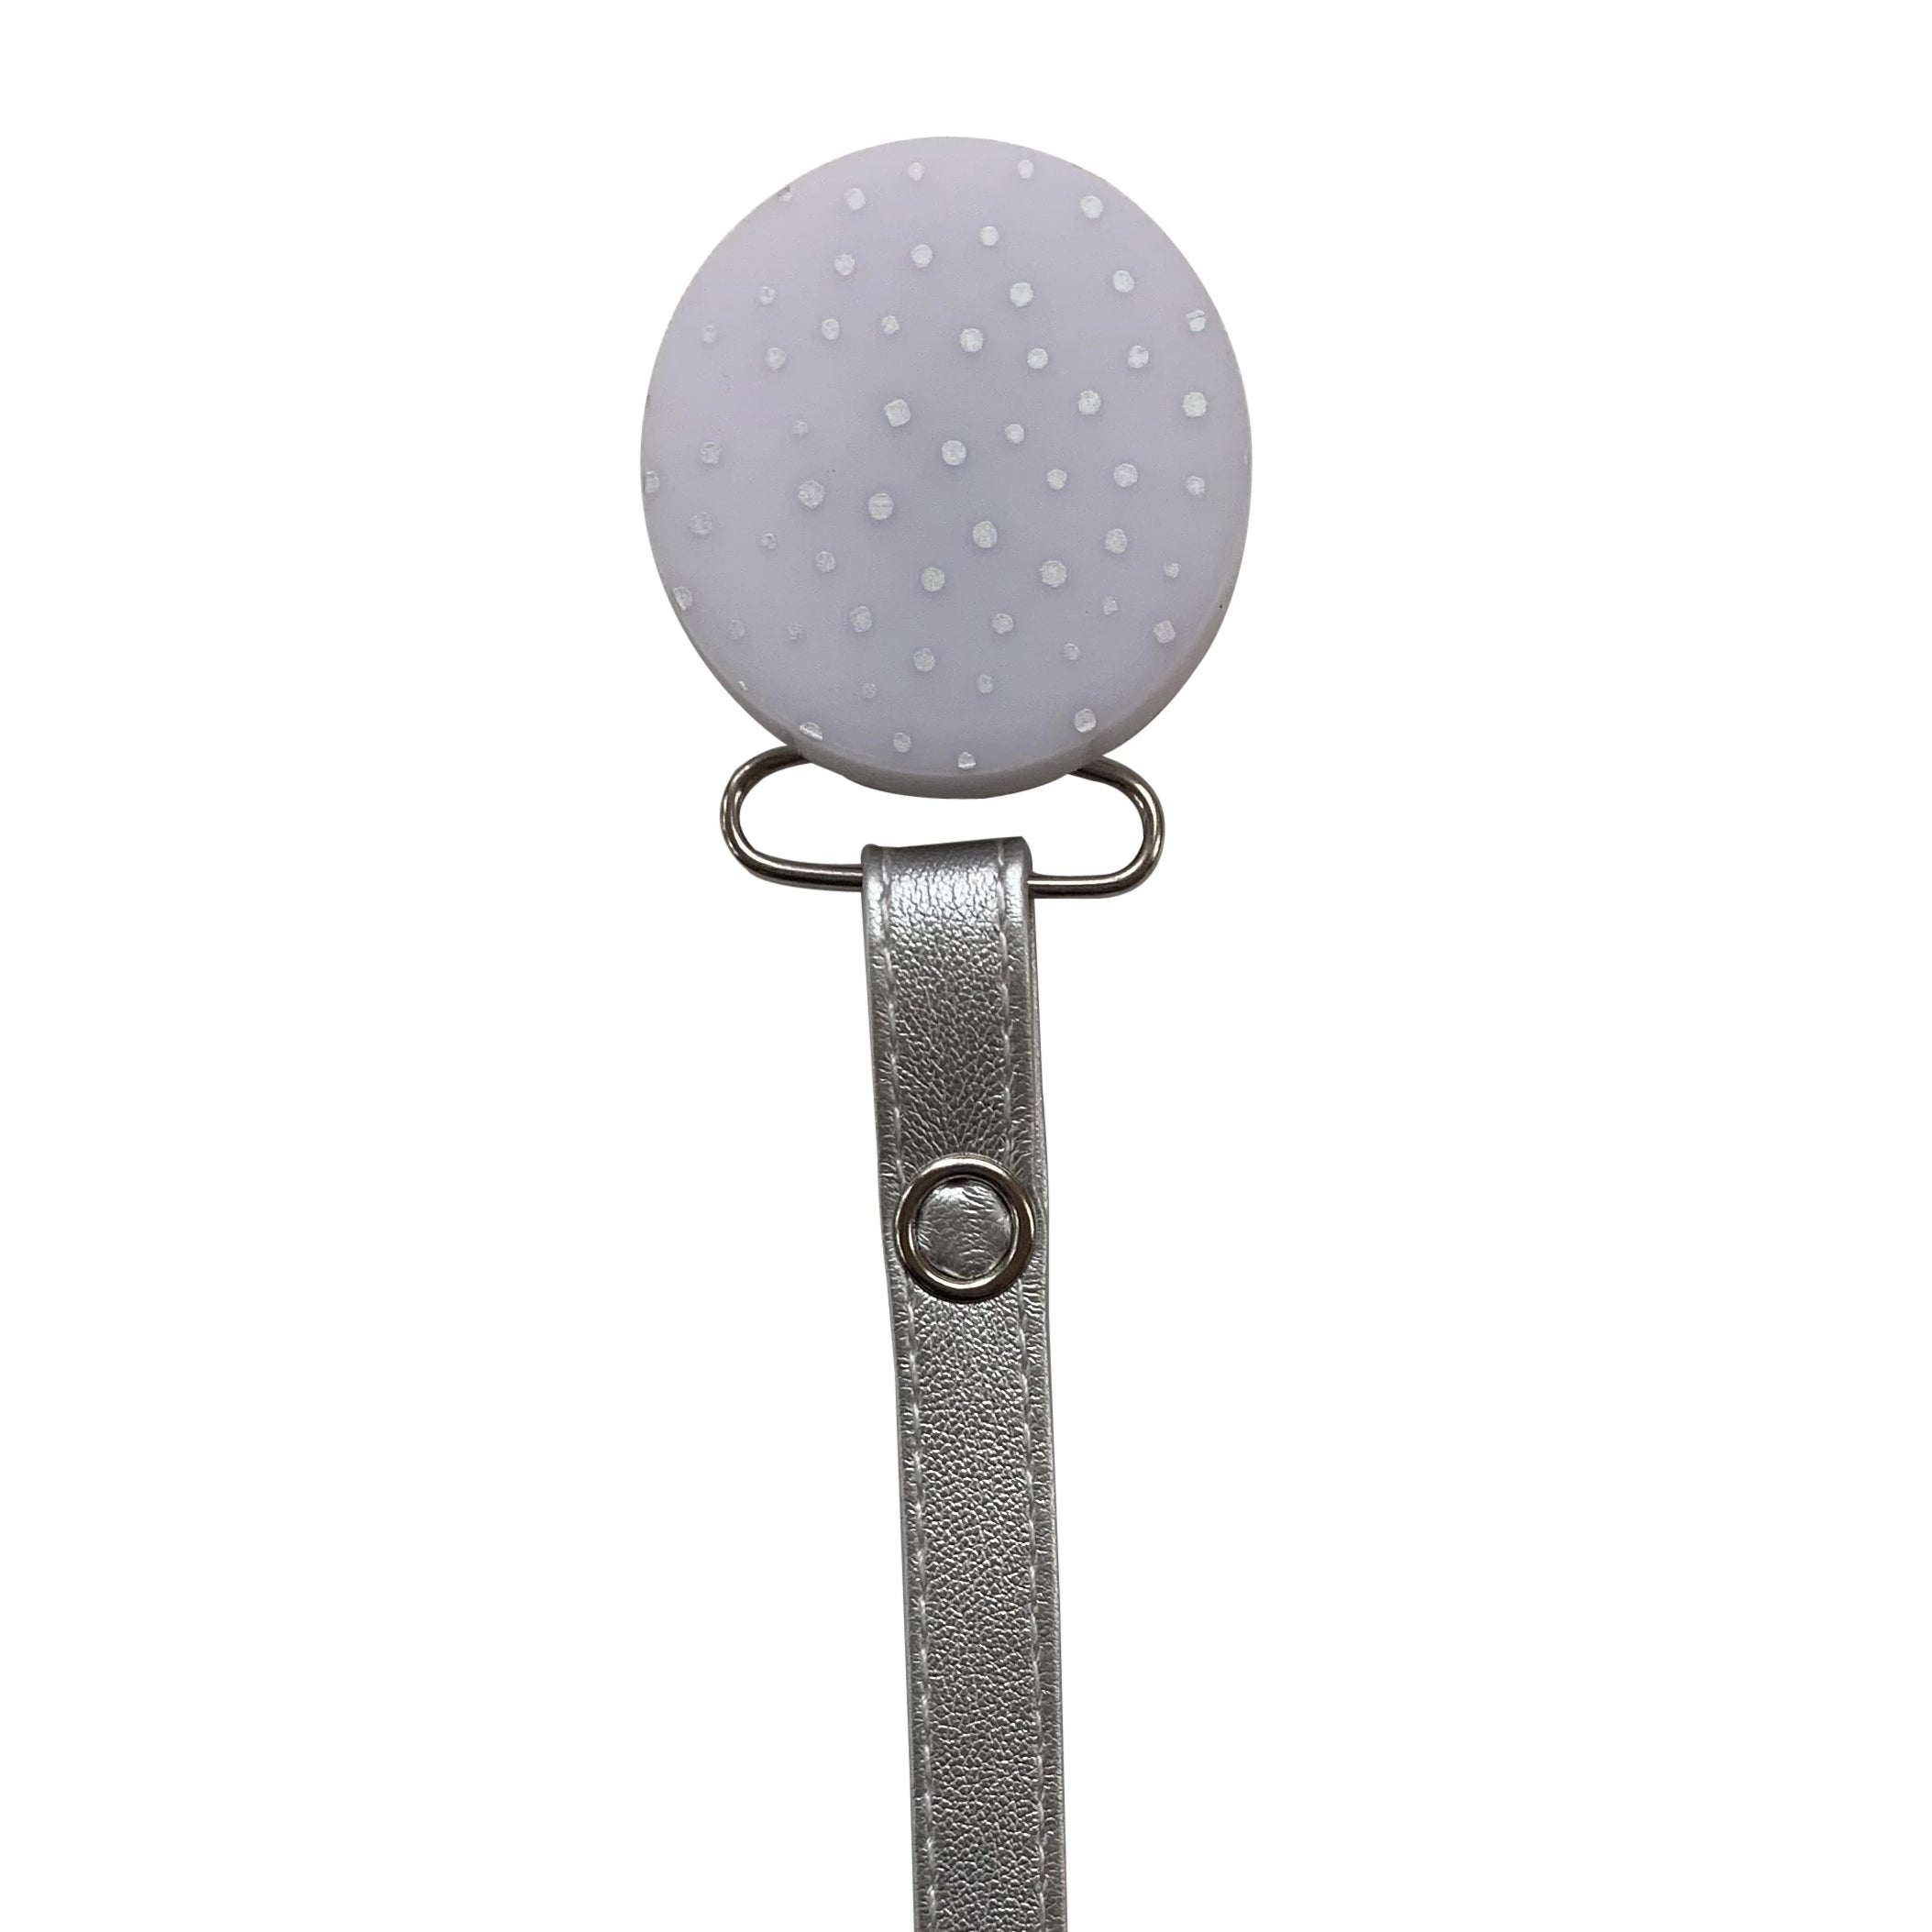 Classy Paci CHIC Grey Silver Polka Dot Round pacifier clip